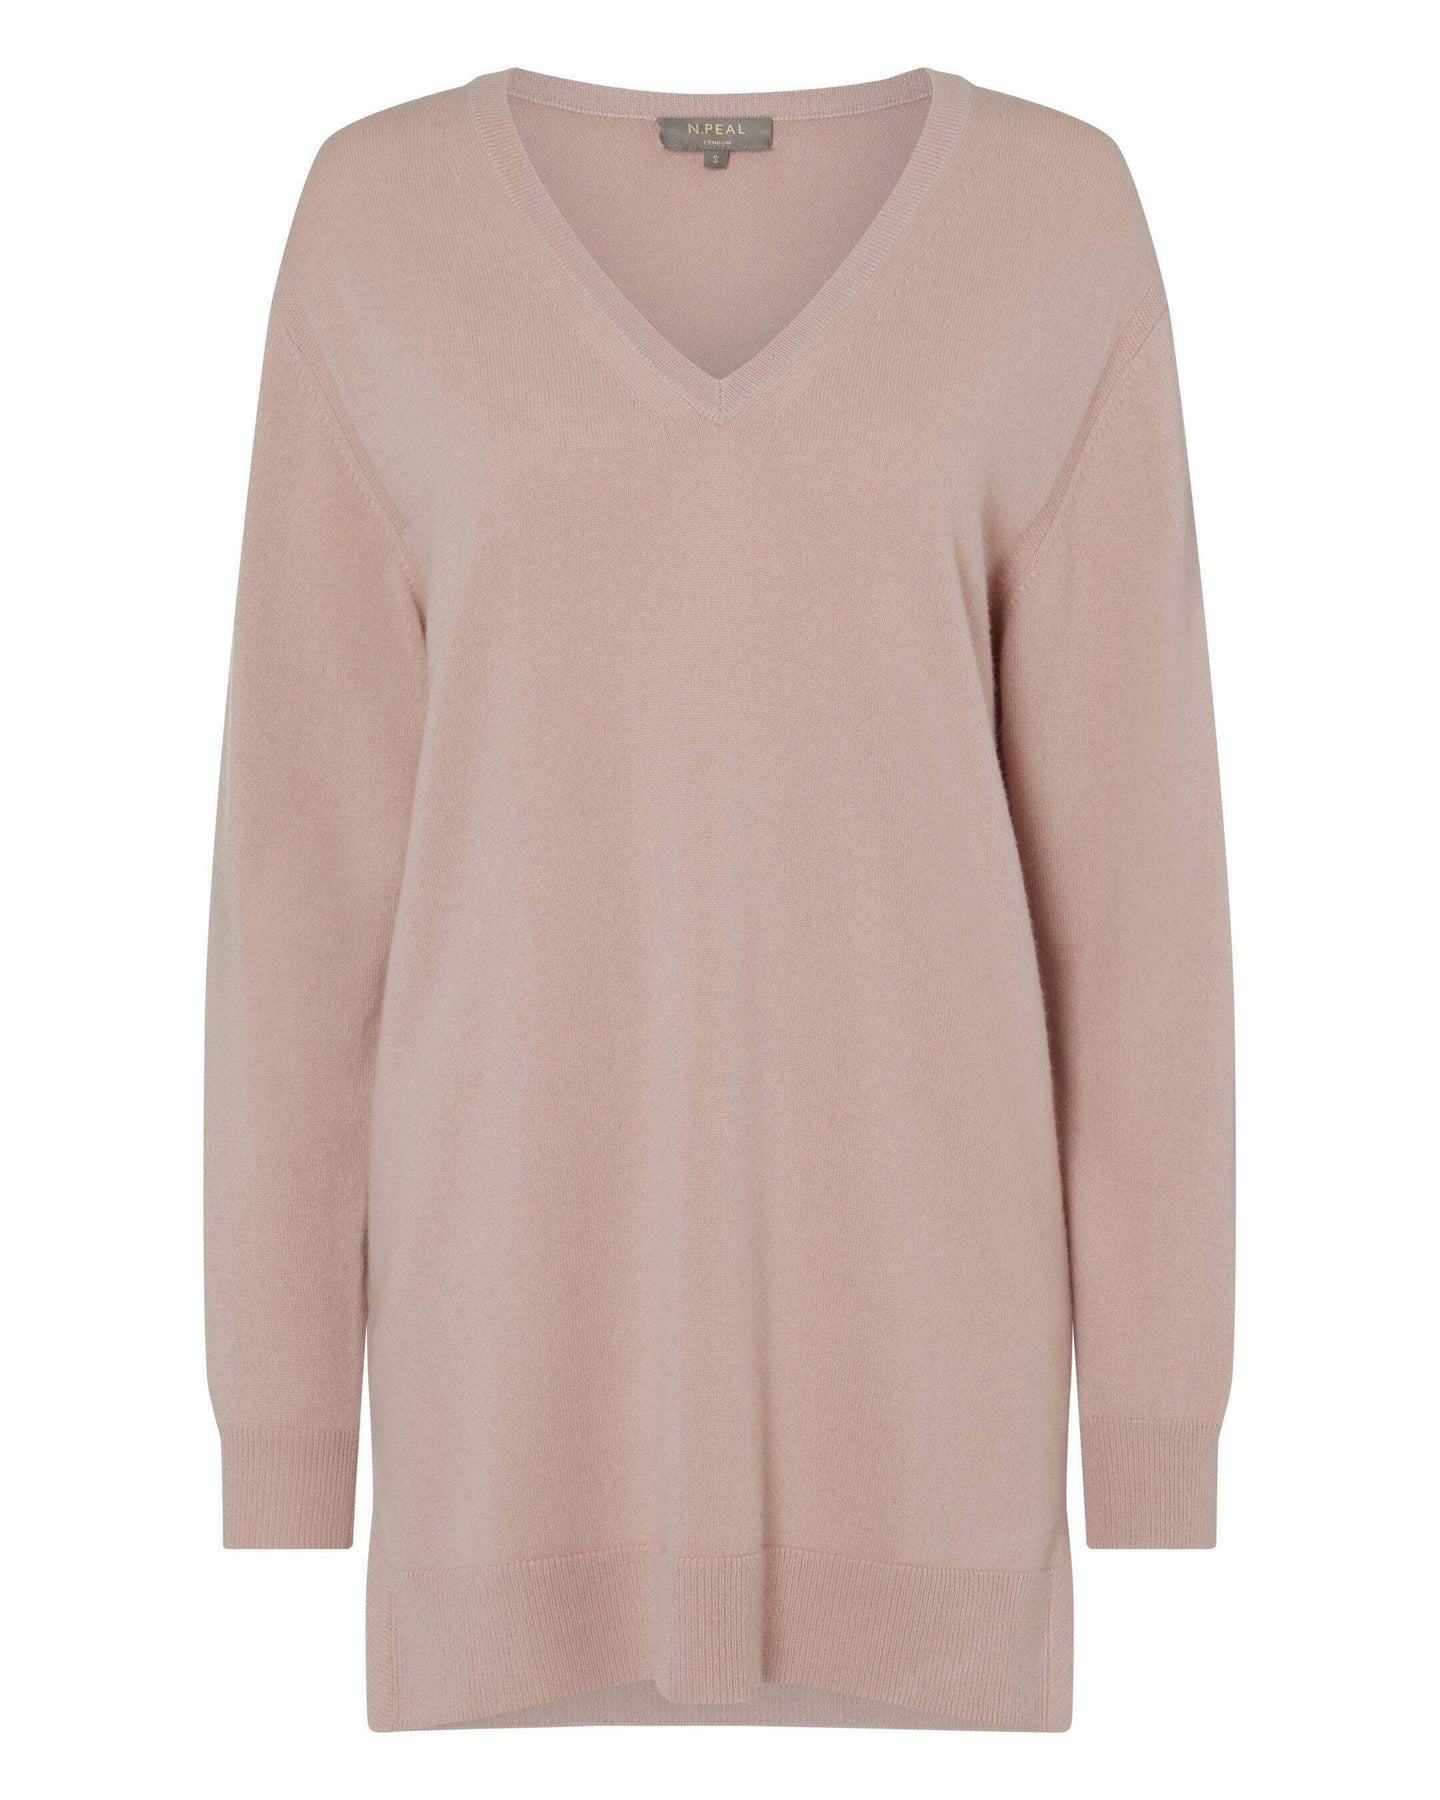 V Neck Longline Cashmere Sweater Desert Sand Brown 2